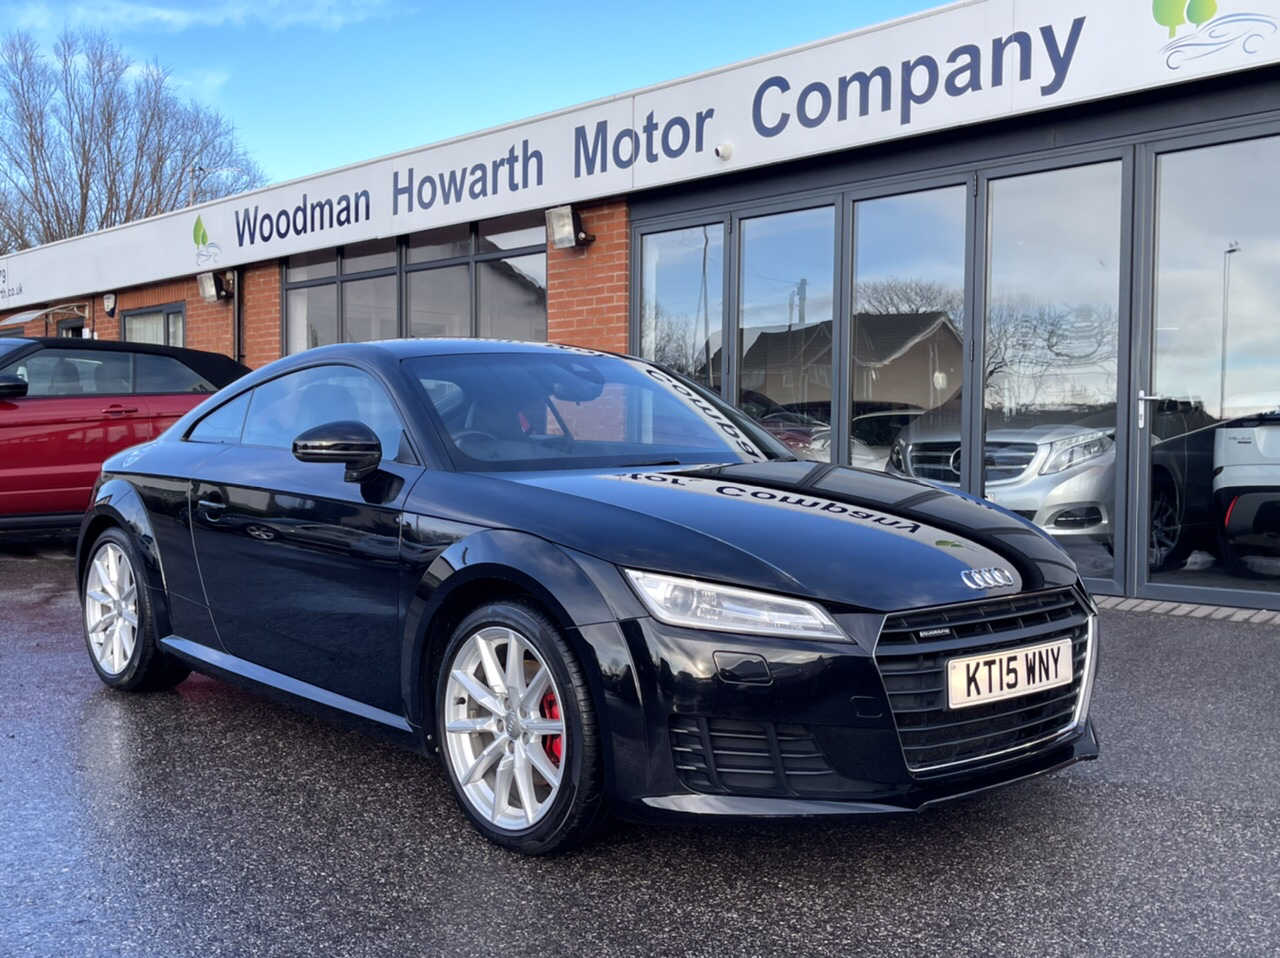 2015 65 AUDI TT 2.0TFSI 230BHP QUATTRO SPORT S-TRONIC AUTO COUPE TECHNOLOGY AND COMFORT AND SOUND PACKS